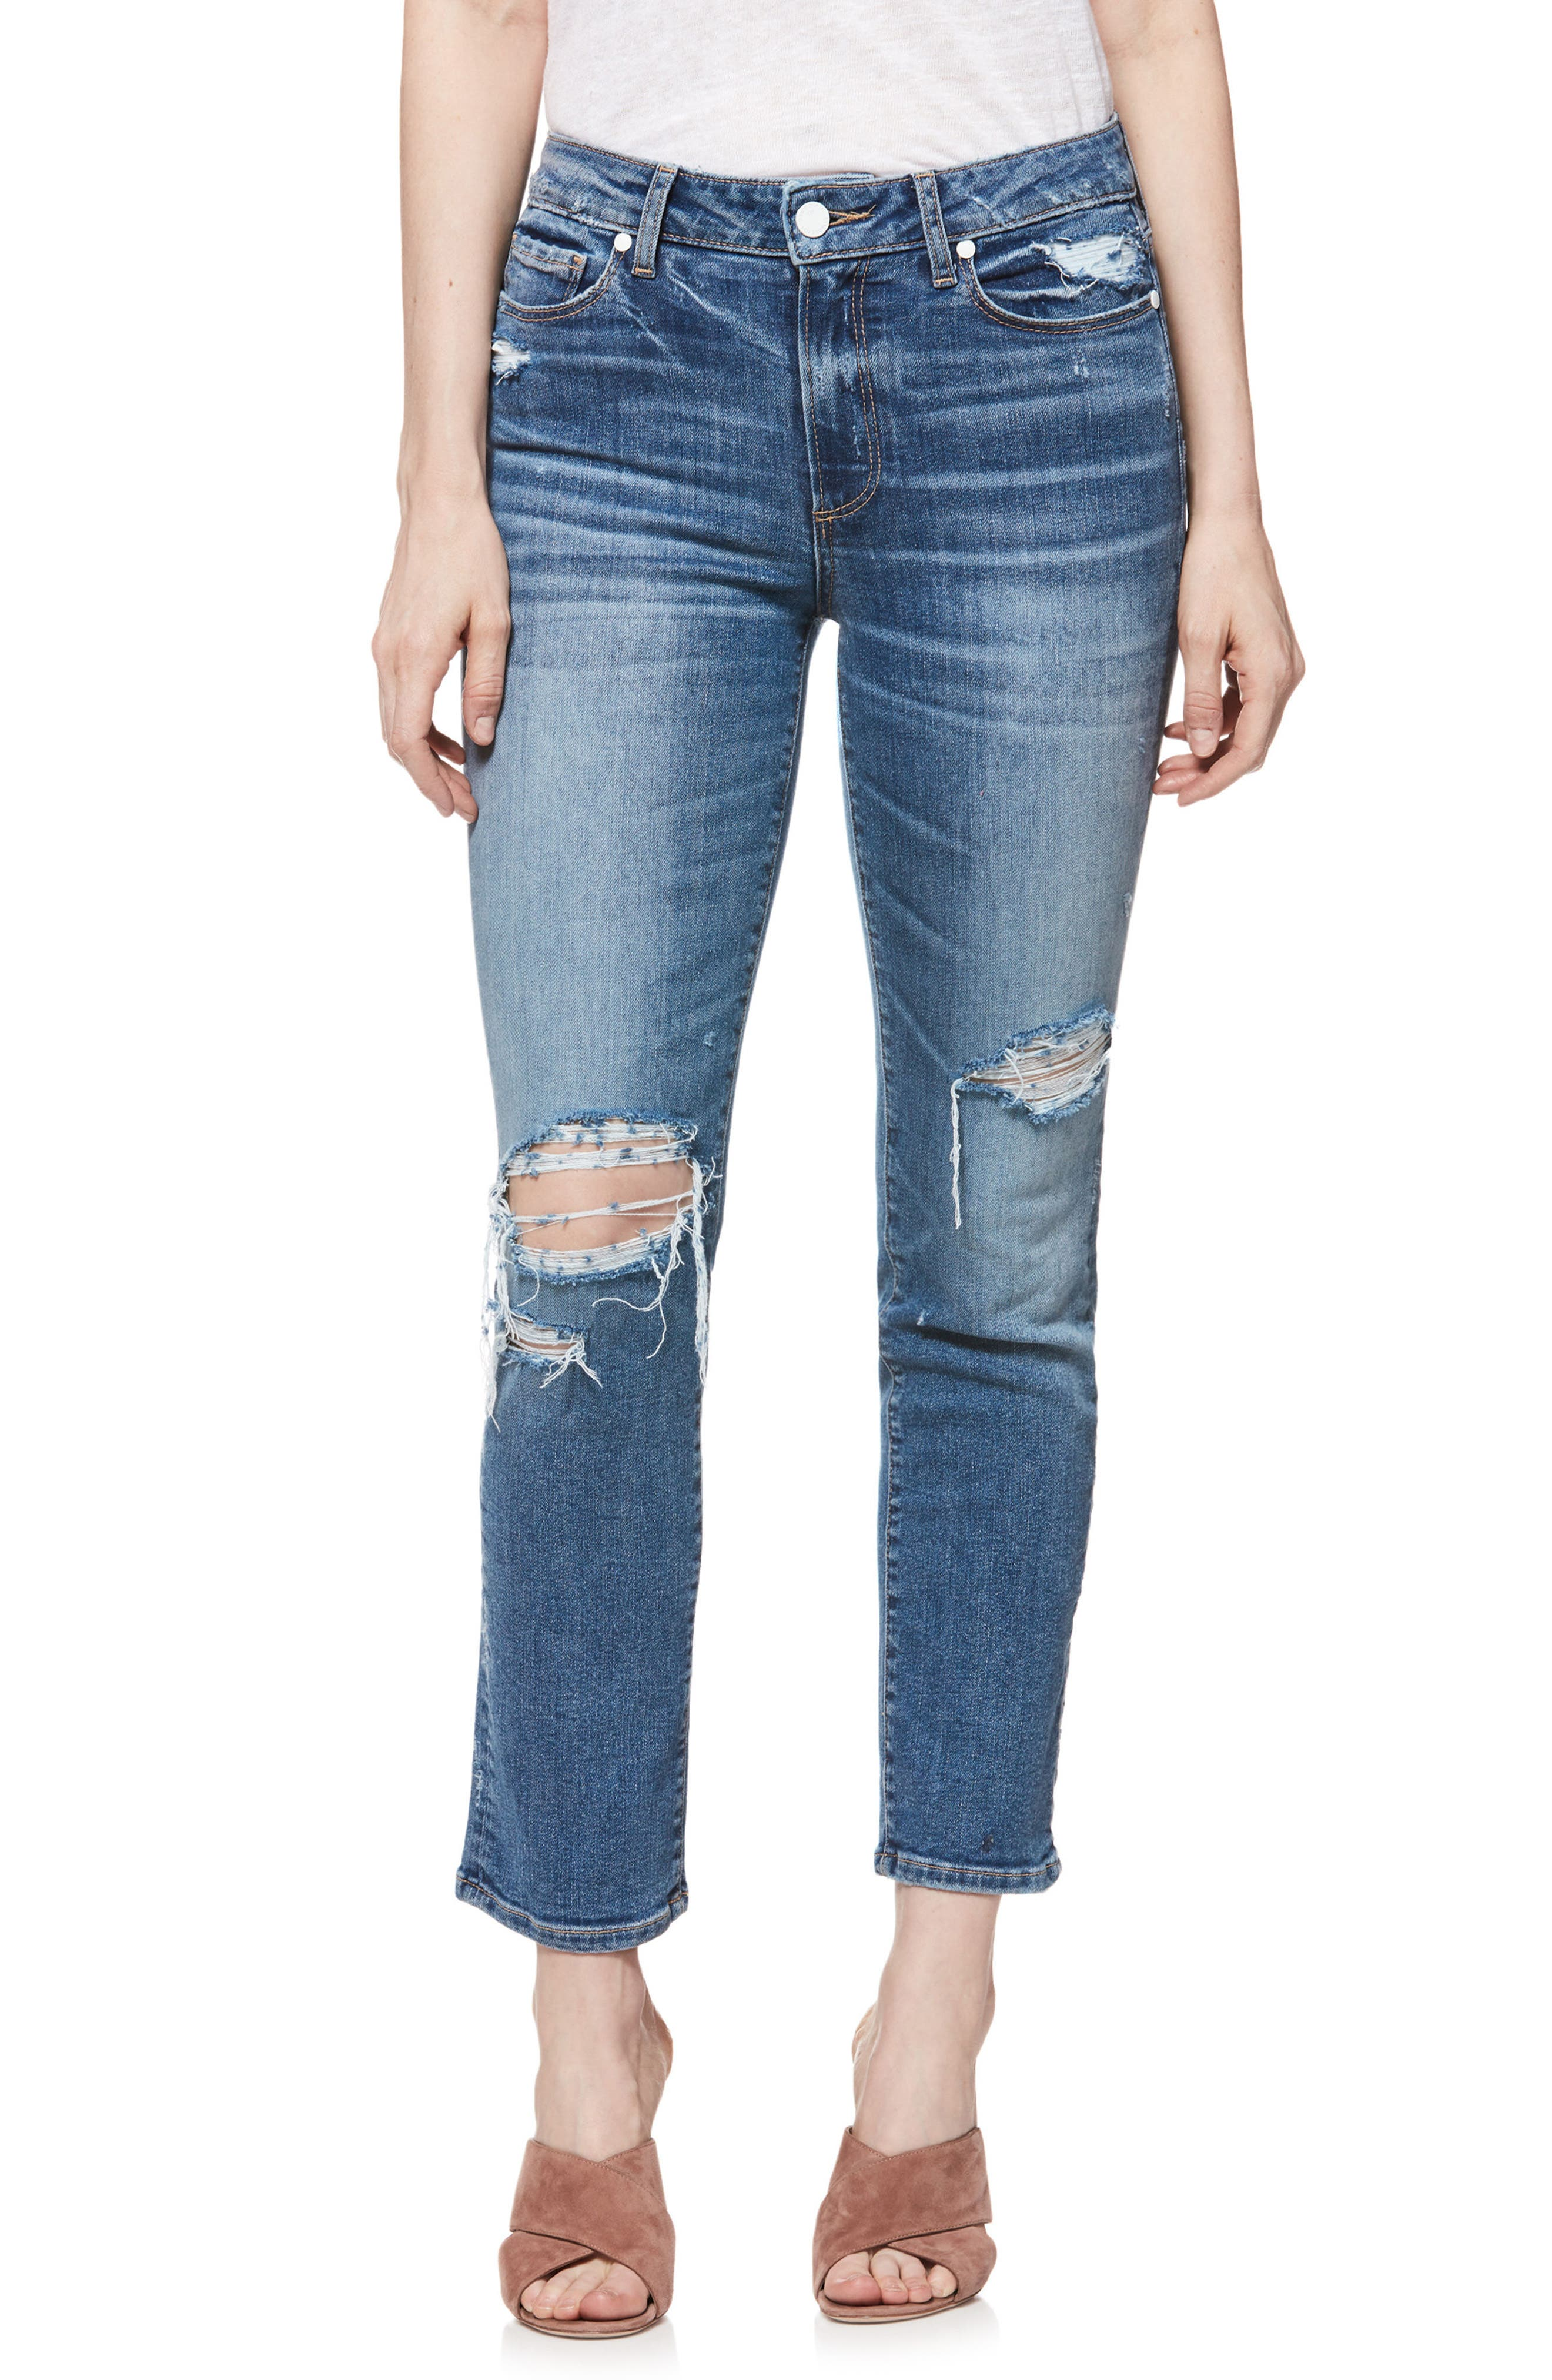 PAIGE Verdugo Transcend Vintage Ripped Ankle Skinny Jeans, Main, color, EMBARCADERO DESTRUCTED